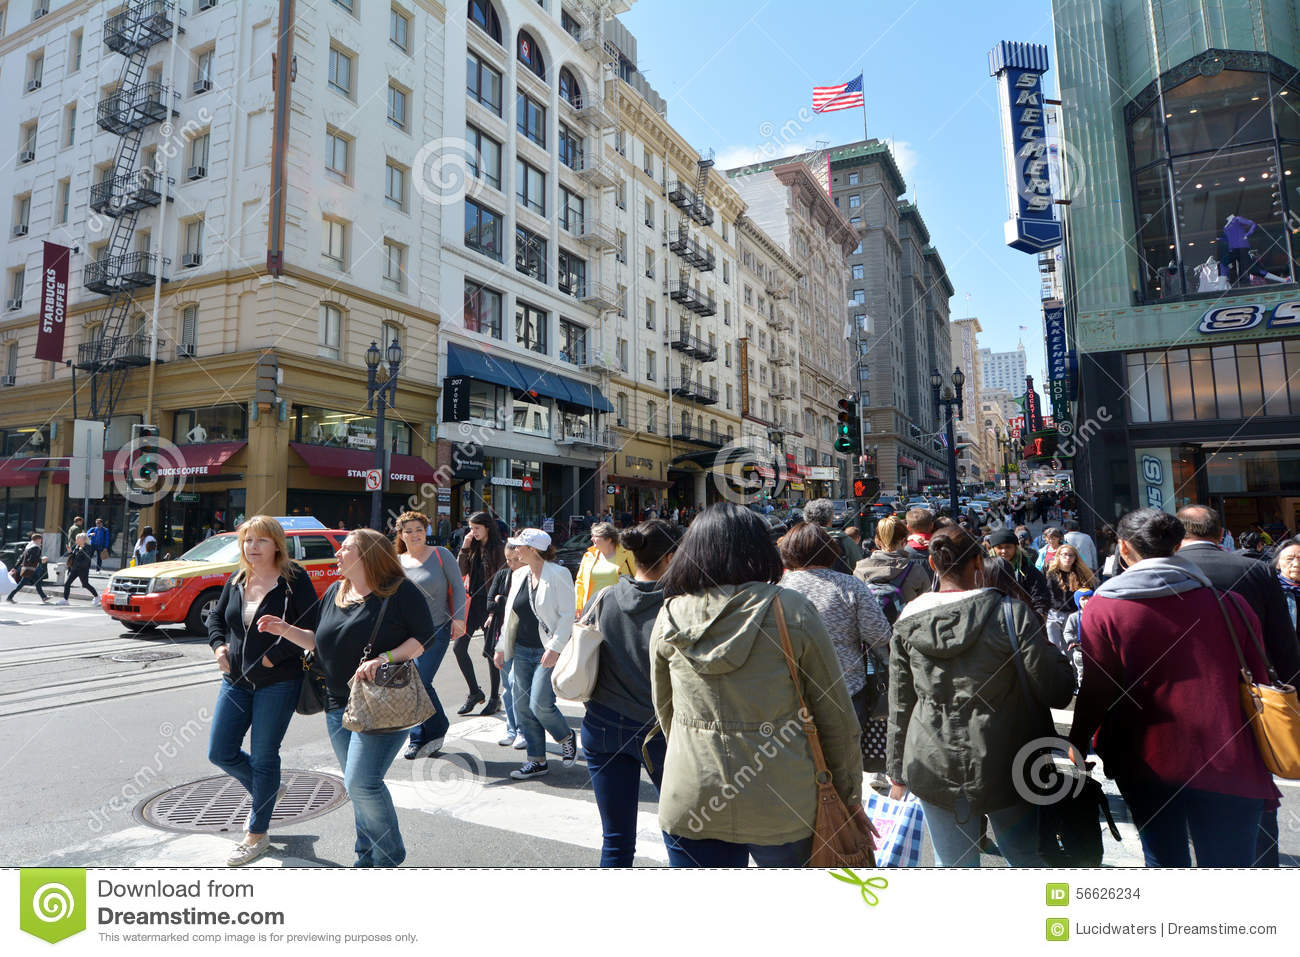 San Francisco May 17 2015traffic In San Francisco It Has A Density Of About 18187 People Per Square Mile 7022 People Per Km2 Making It 2nd Most